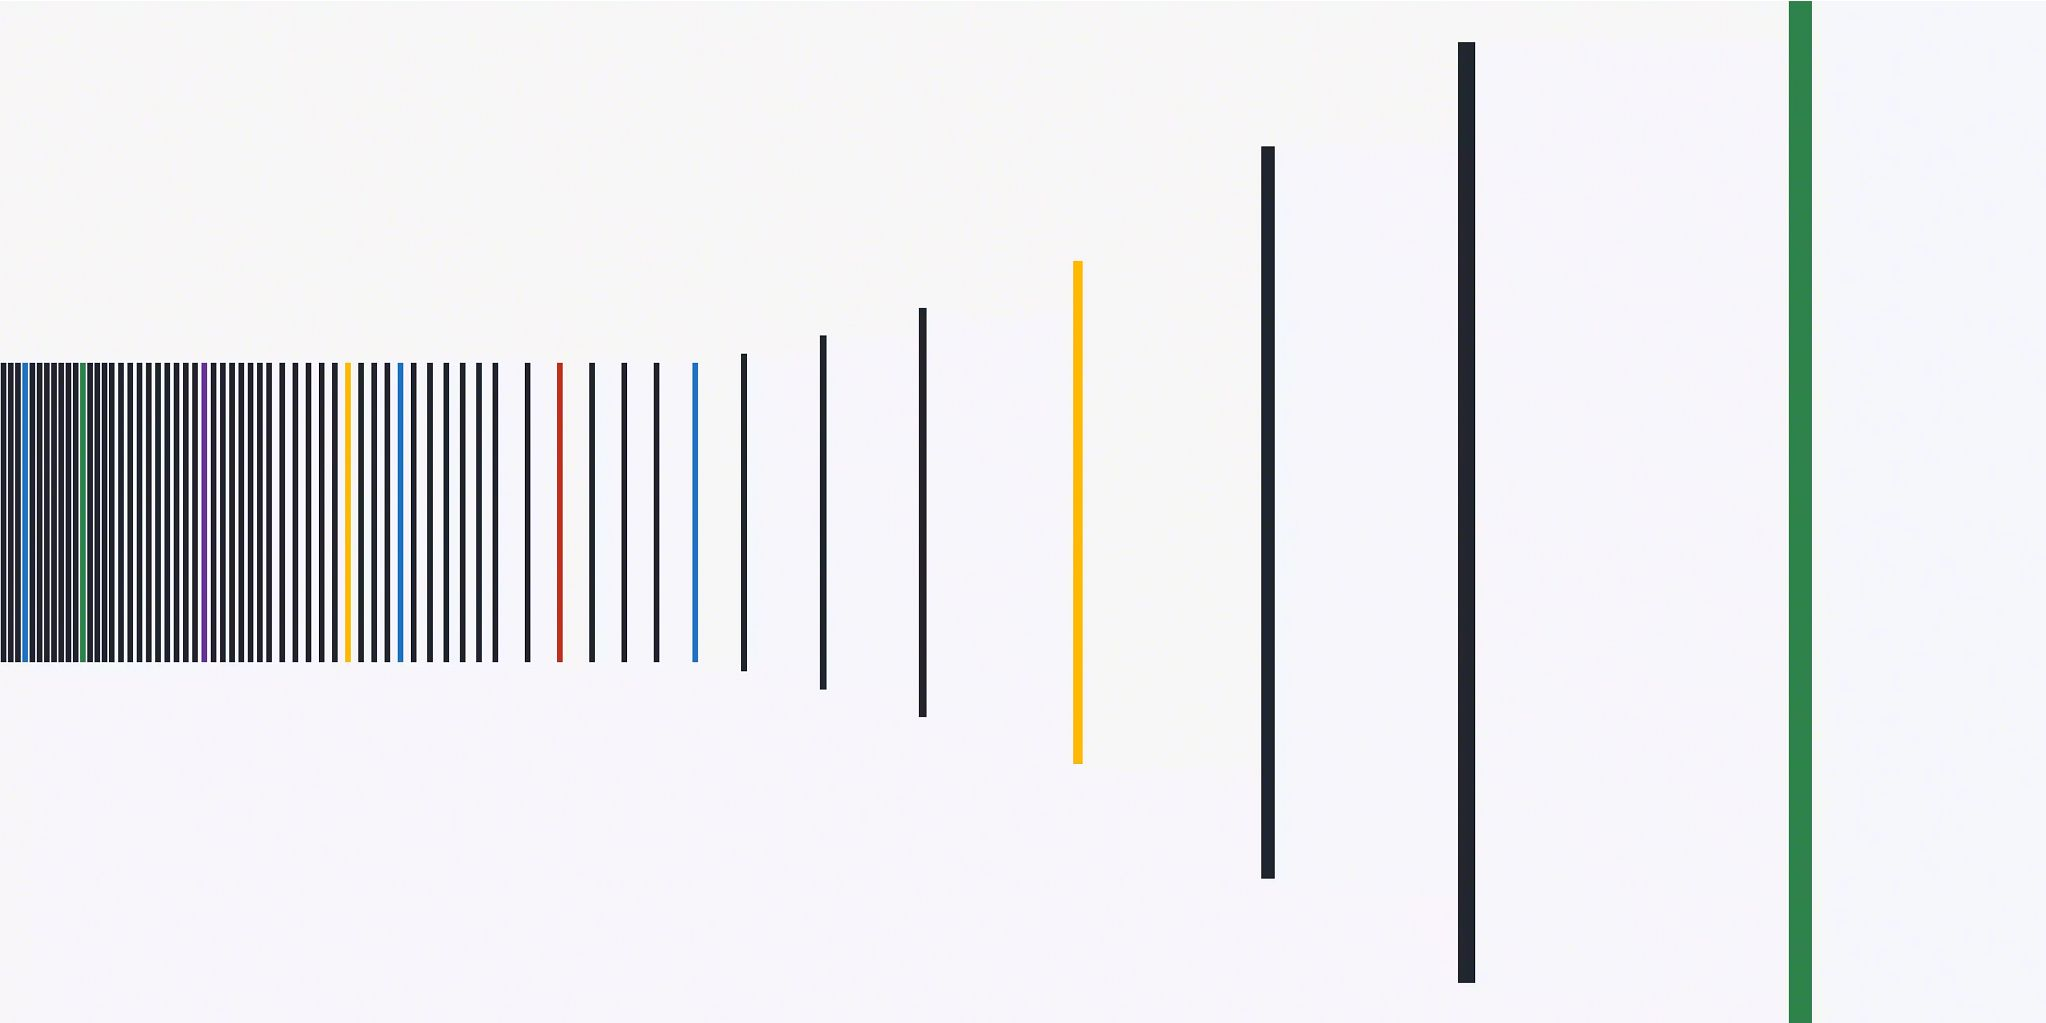 Solid color and black lines that are 1/3rd the height of the graphic starting close together in the middle of the illustration on the left and then slowly getting further apart until they reach the middle third of the graphic. At which point they start growing in height and get further apart until the graphic ends.